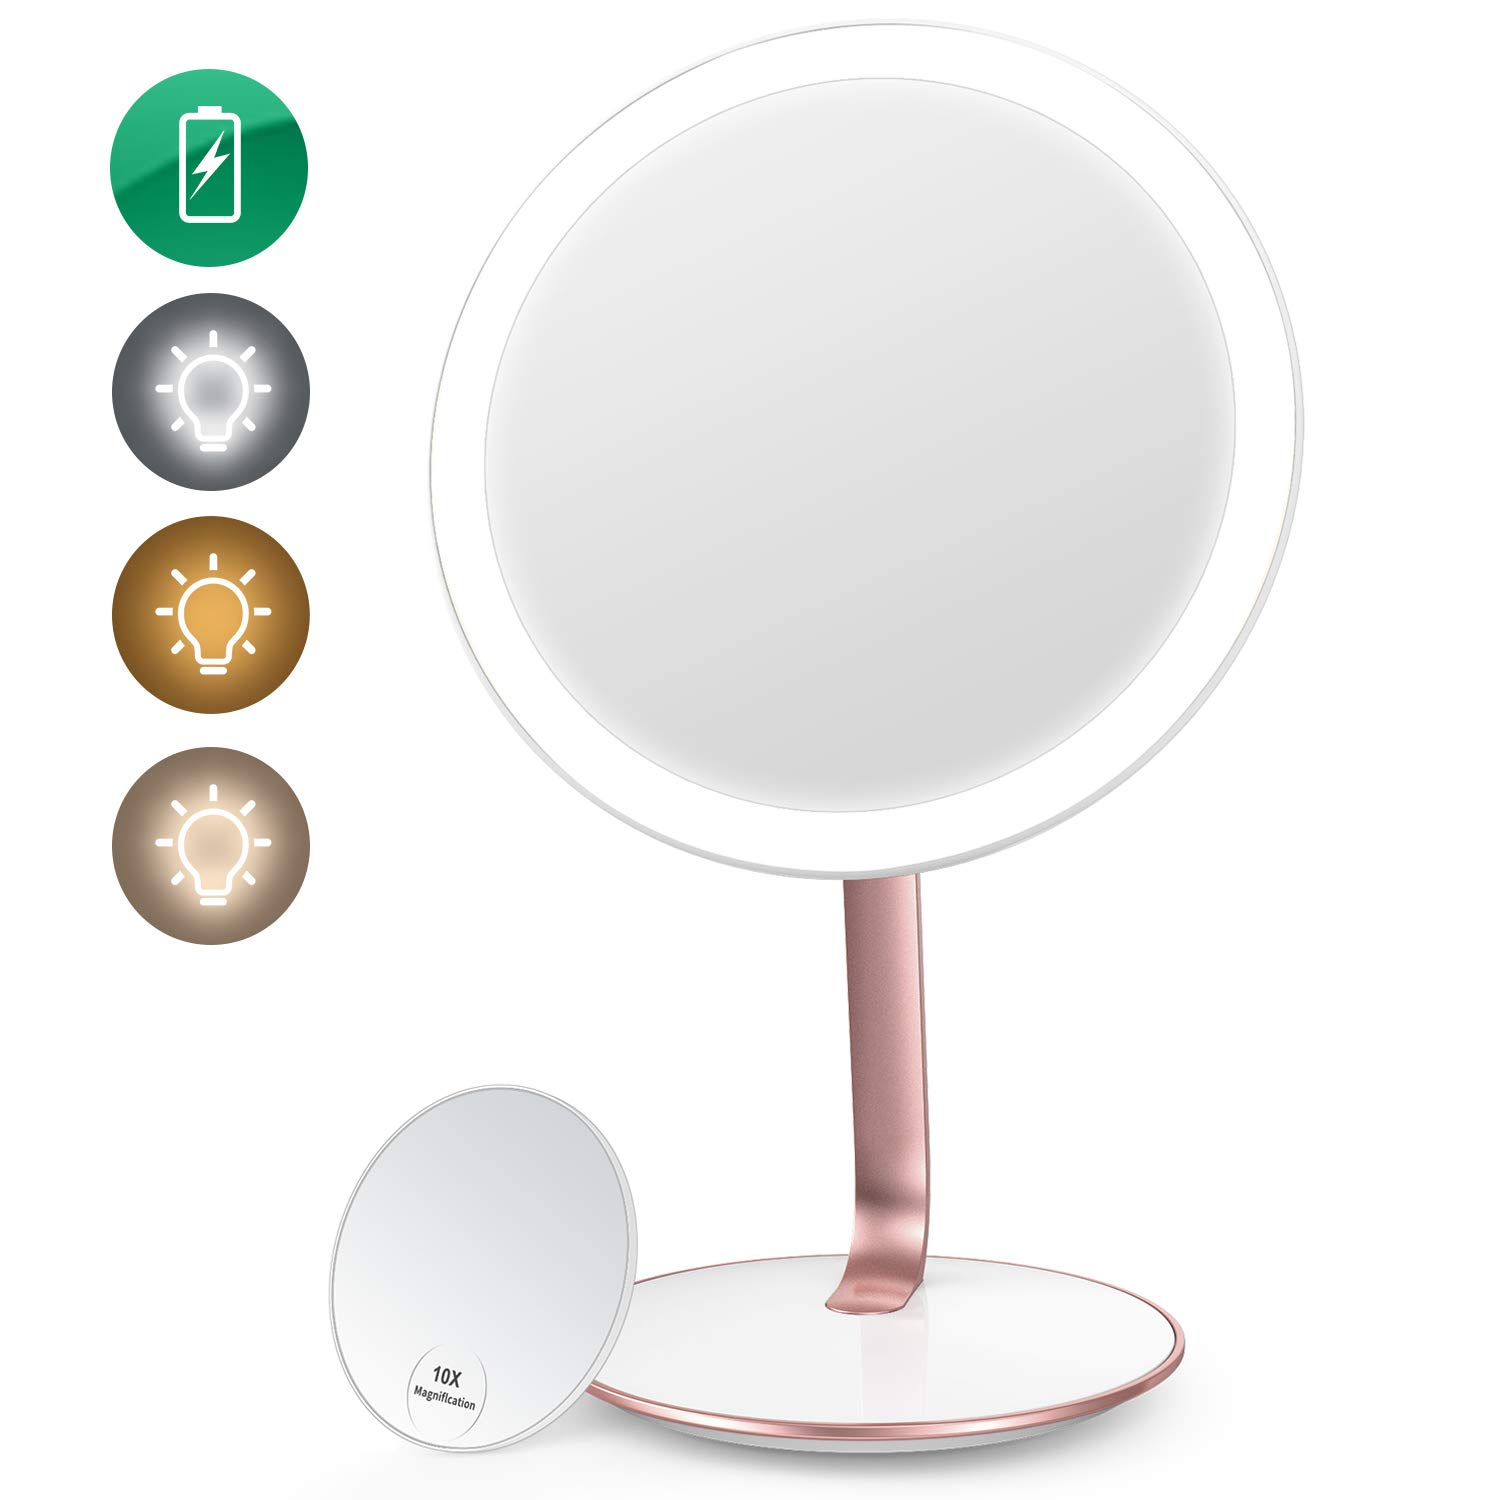 EASEHOLD Makeup Vanity Mirror Rechargeable with 3 Colors 52 LEDs Lights Smart Touch Sensor Dimmable 1X/10X Magnifying Cosmetic Beauty High Definition Circle Portable Countertop Desk Face Mirror by EASEHOLD